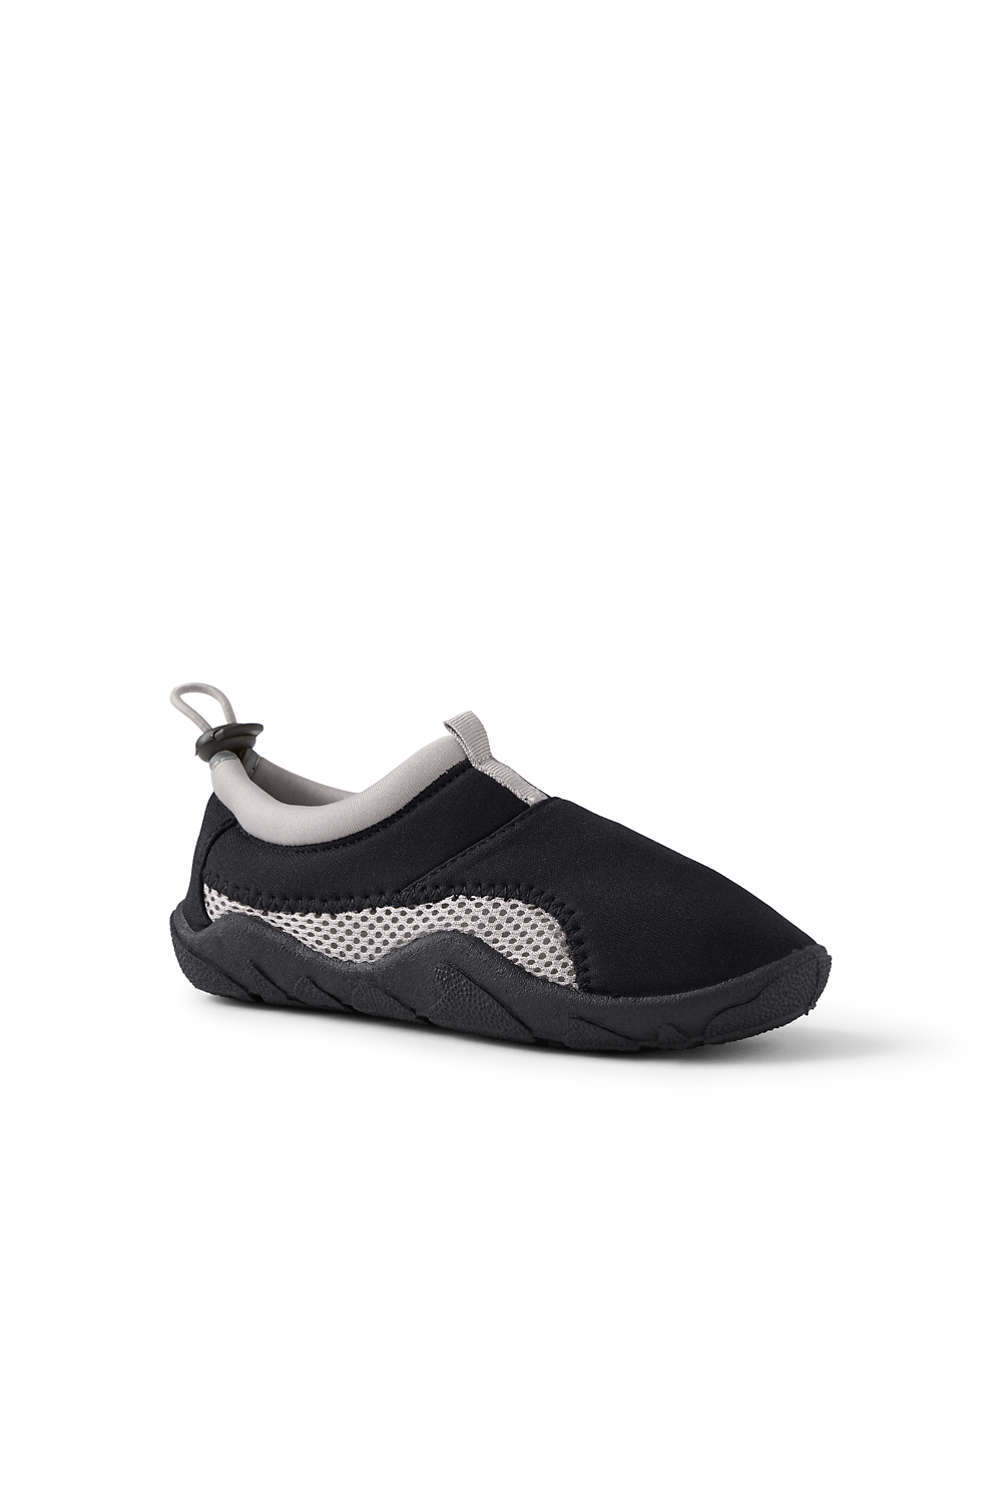 11de3e1cad Kids Slip-on Water Shoes from Lands  End